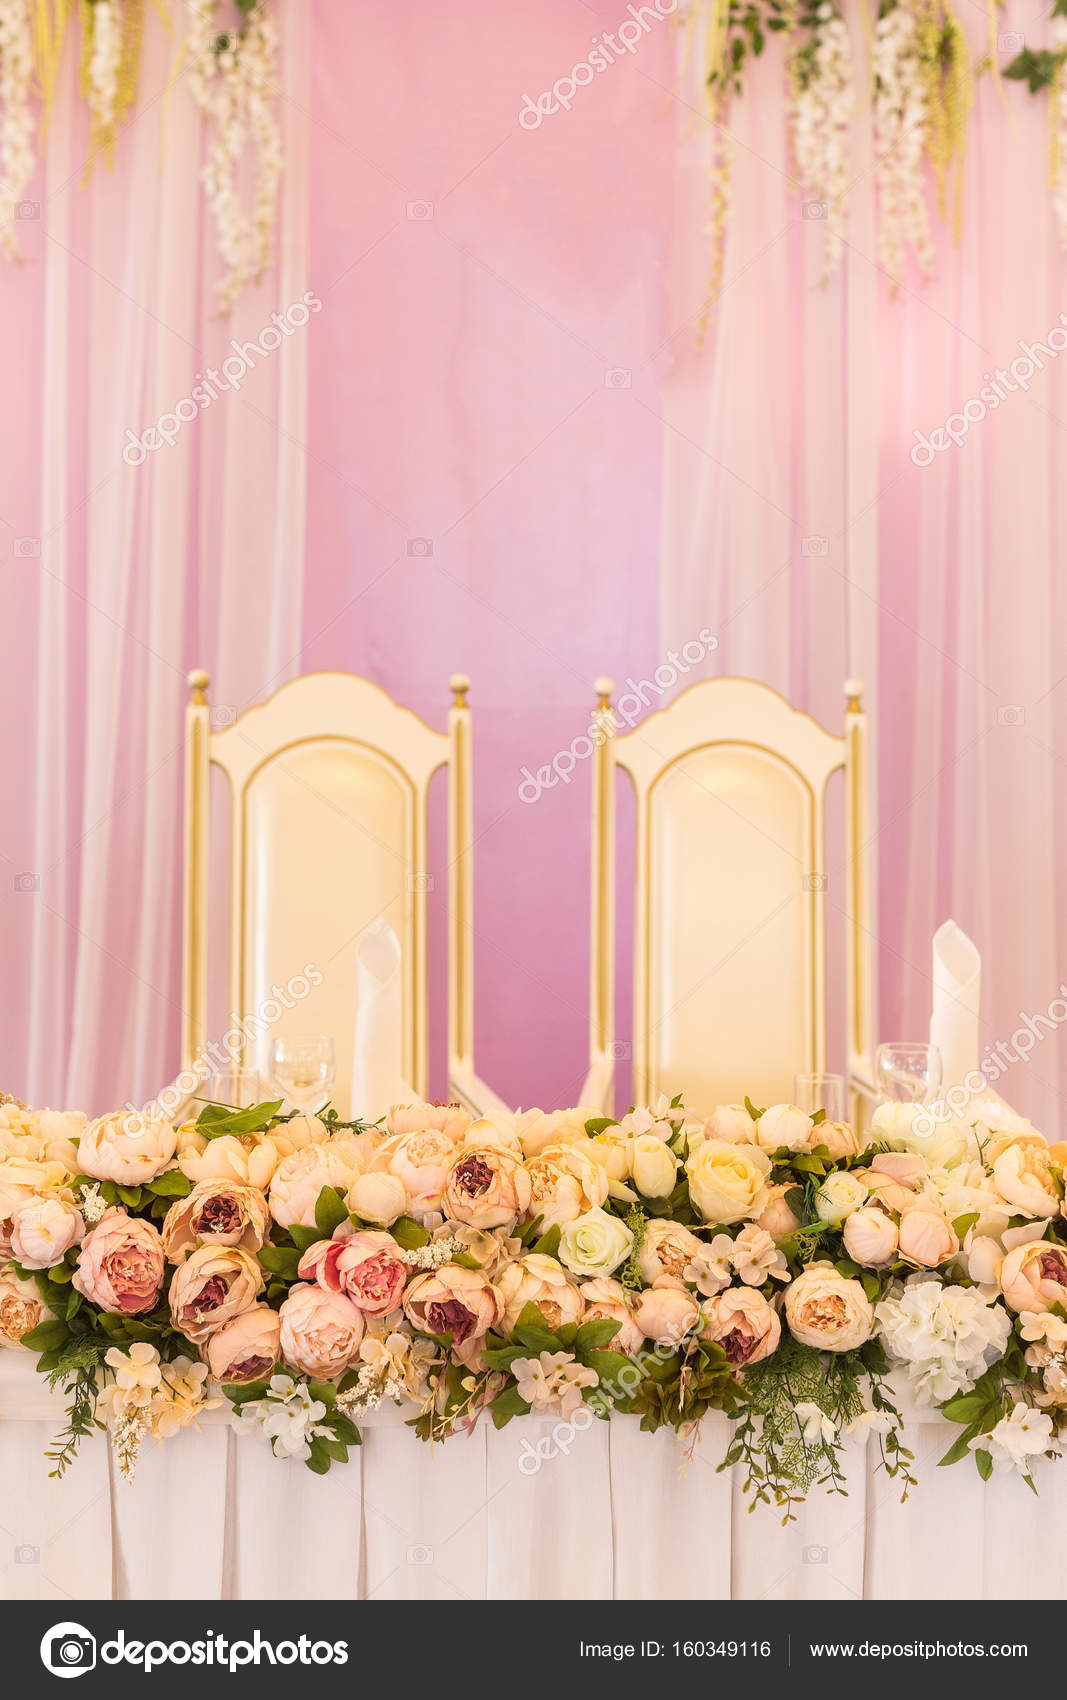 Festive Table For The Bride And Groom Decorated With Pink Cloth And